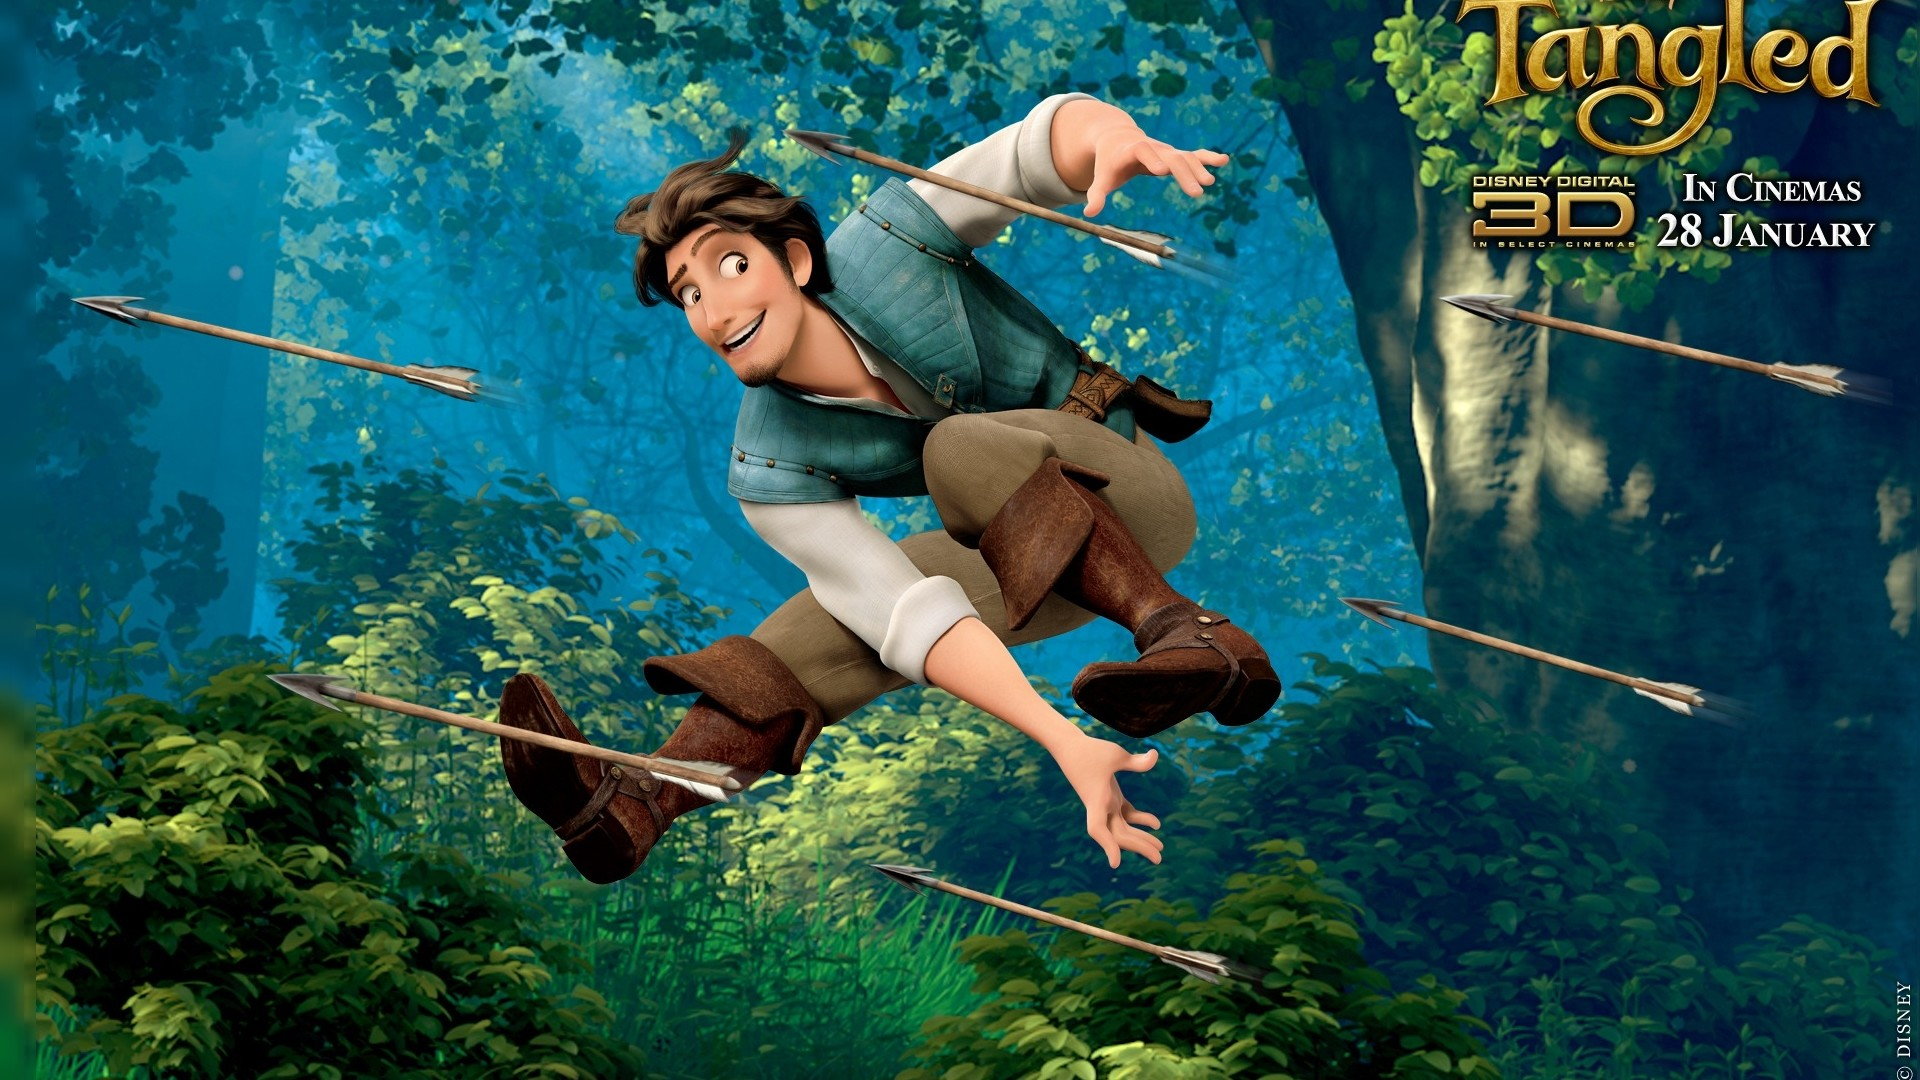 1920x1080 wallpaper, Tangled, Flynn Rider, Animated Movie